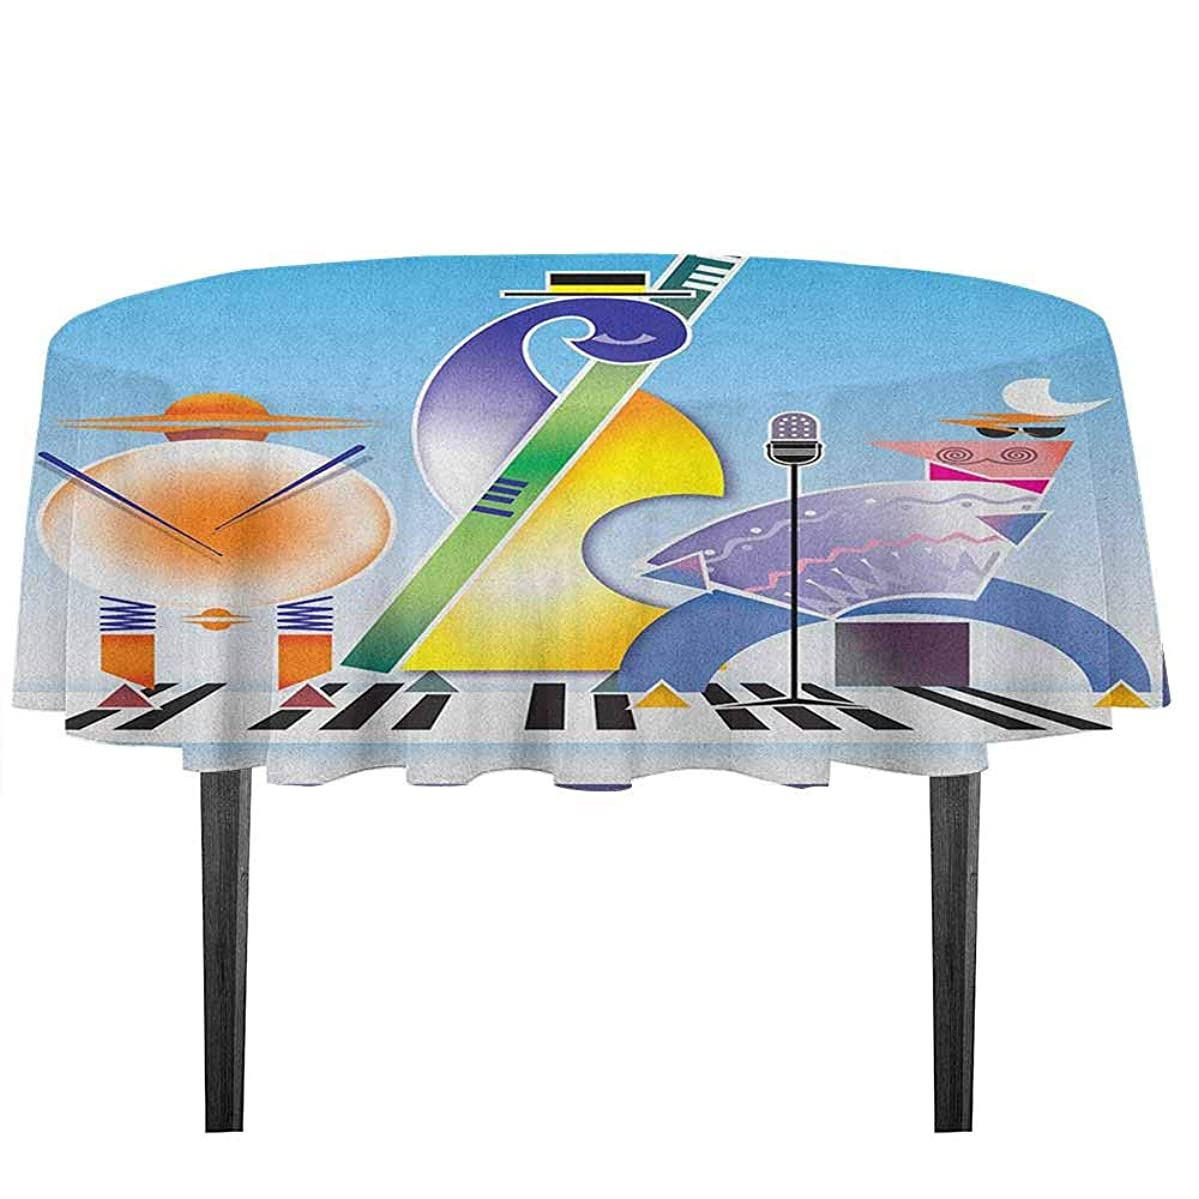 kangkaishi Music Washable Tablecloth Abstract Band of Geometric Shapes Drums Accordion Performing on Keyboard Surface Desktop Protection pad D55.11 Inch Multicolor